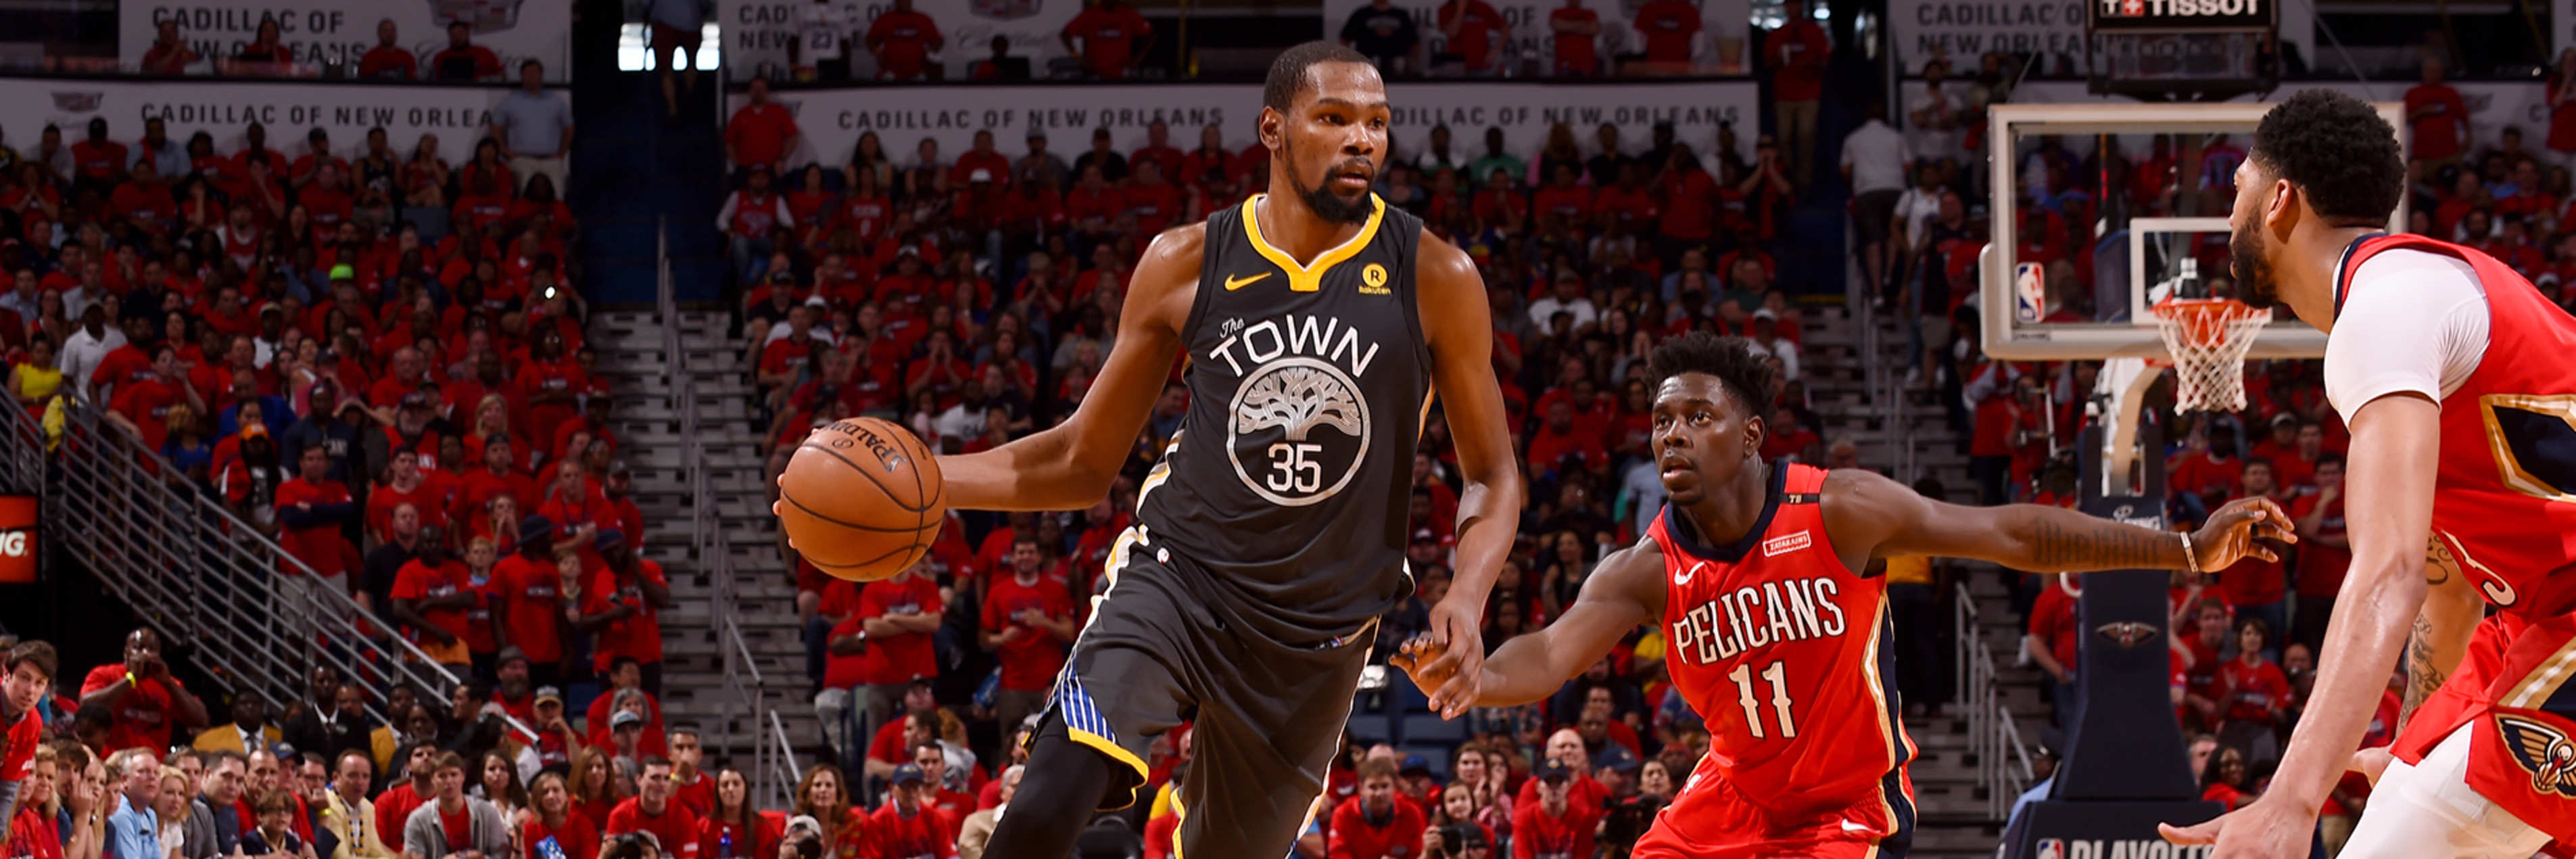 Durant Dubs Dominate Game 4 in New Orleans